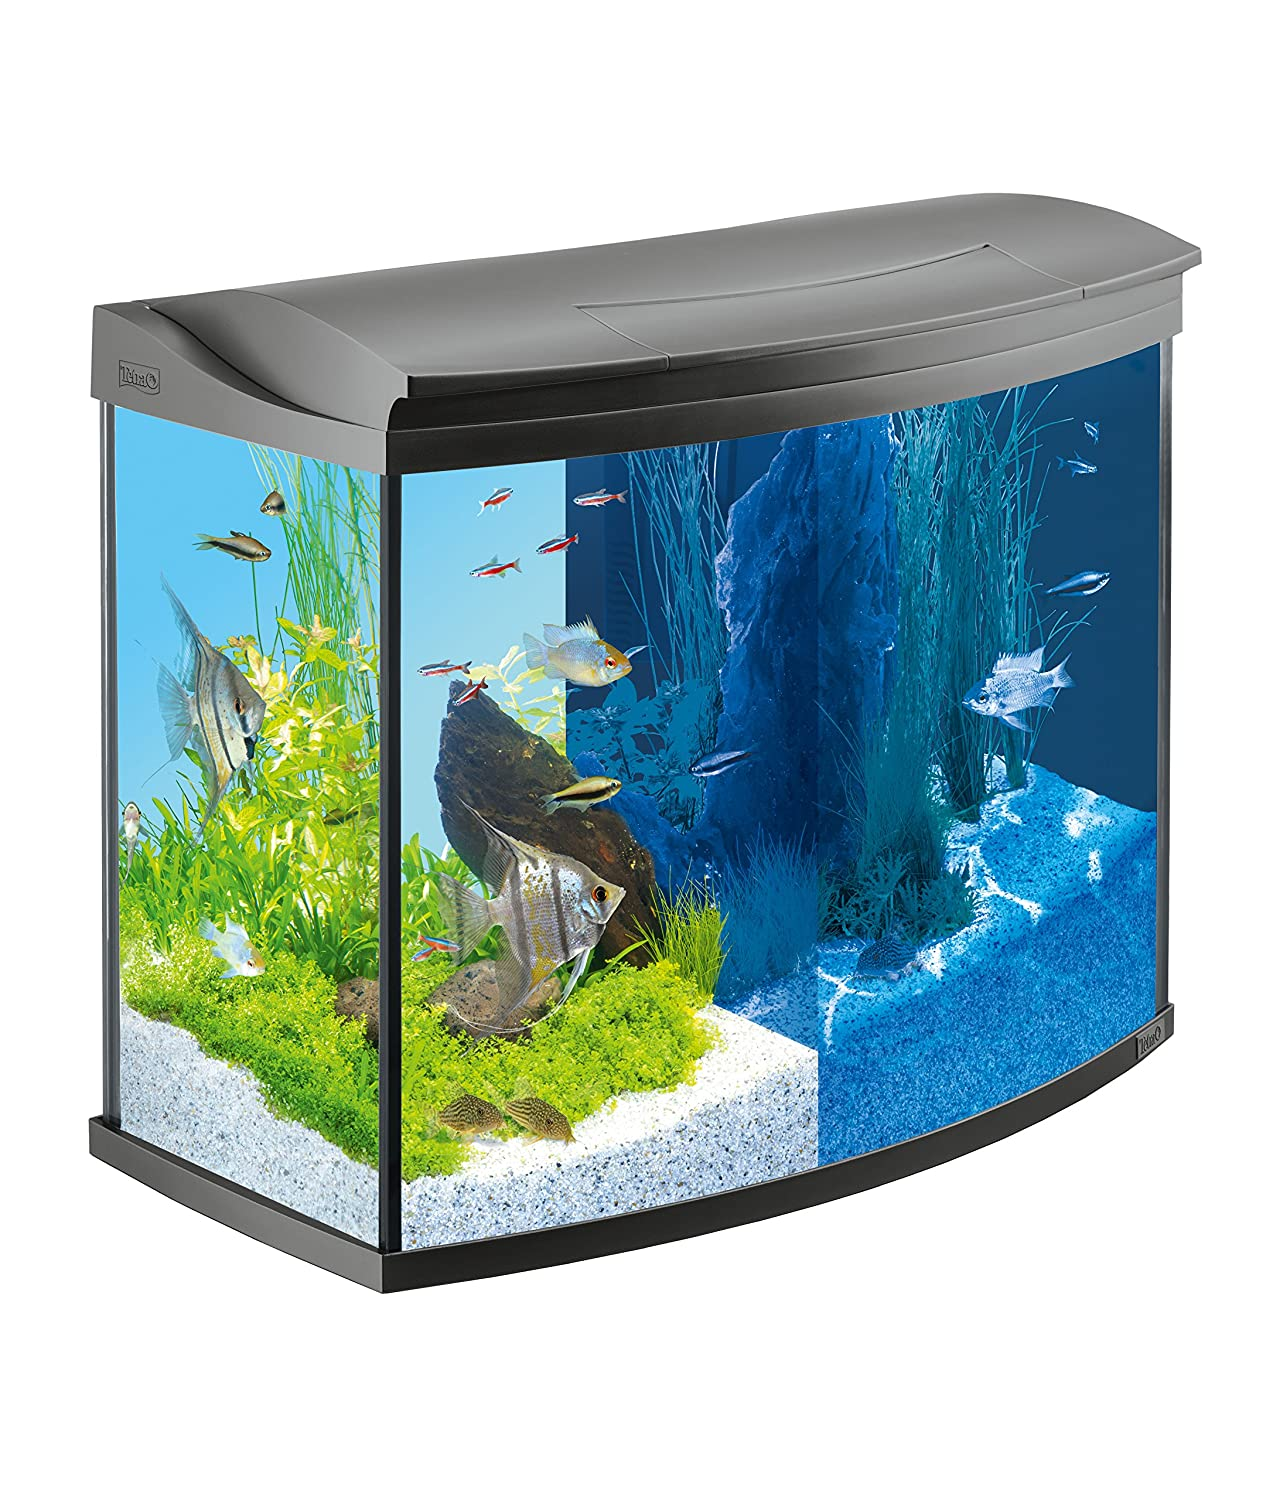 Tetra Acuario AquaArt LED 130L Set completo 130 L: Amazon.es: Productos para mascotas